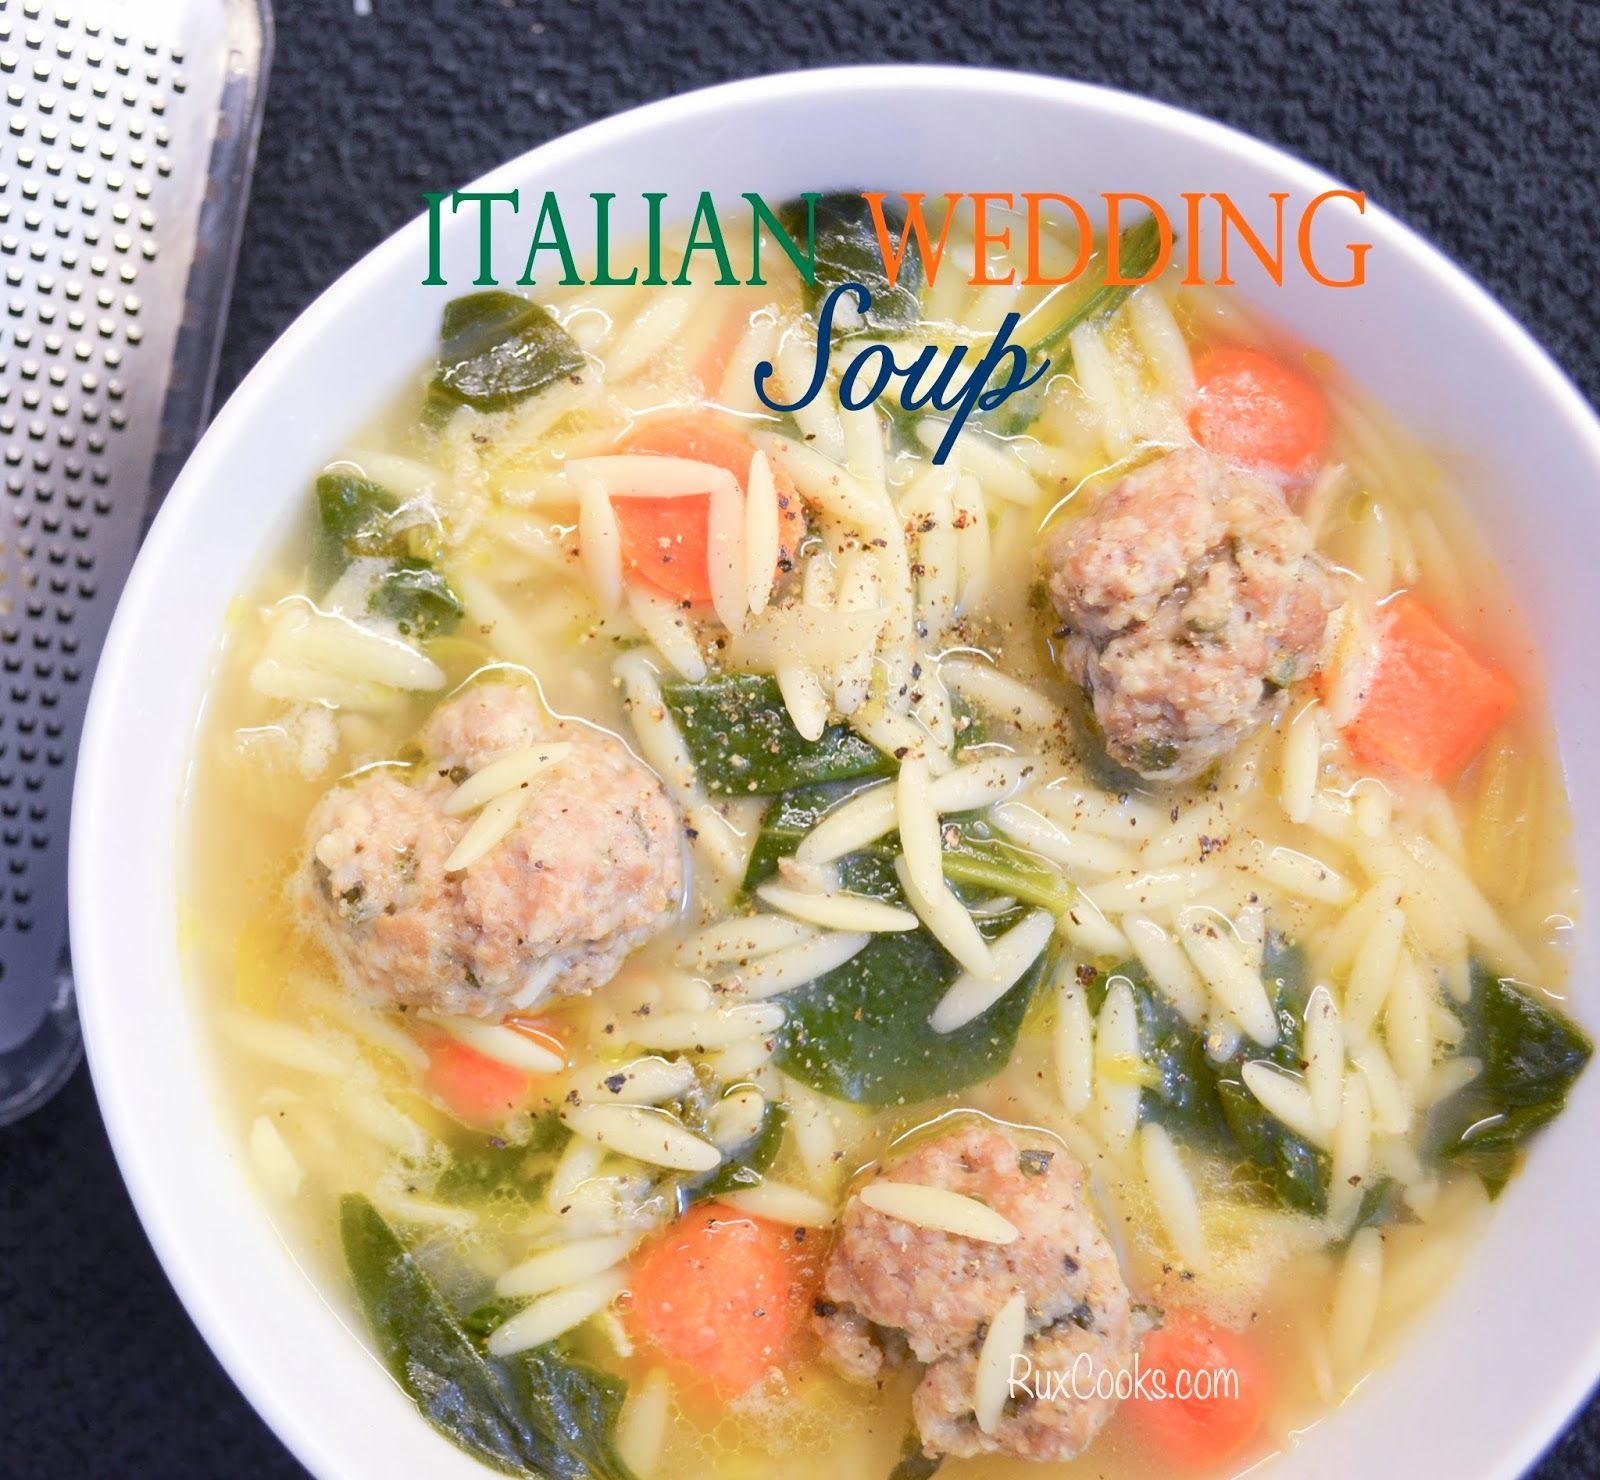 Italian Wedding Soup. Low Calorie Italian Wedding Soup